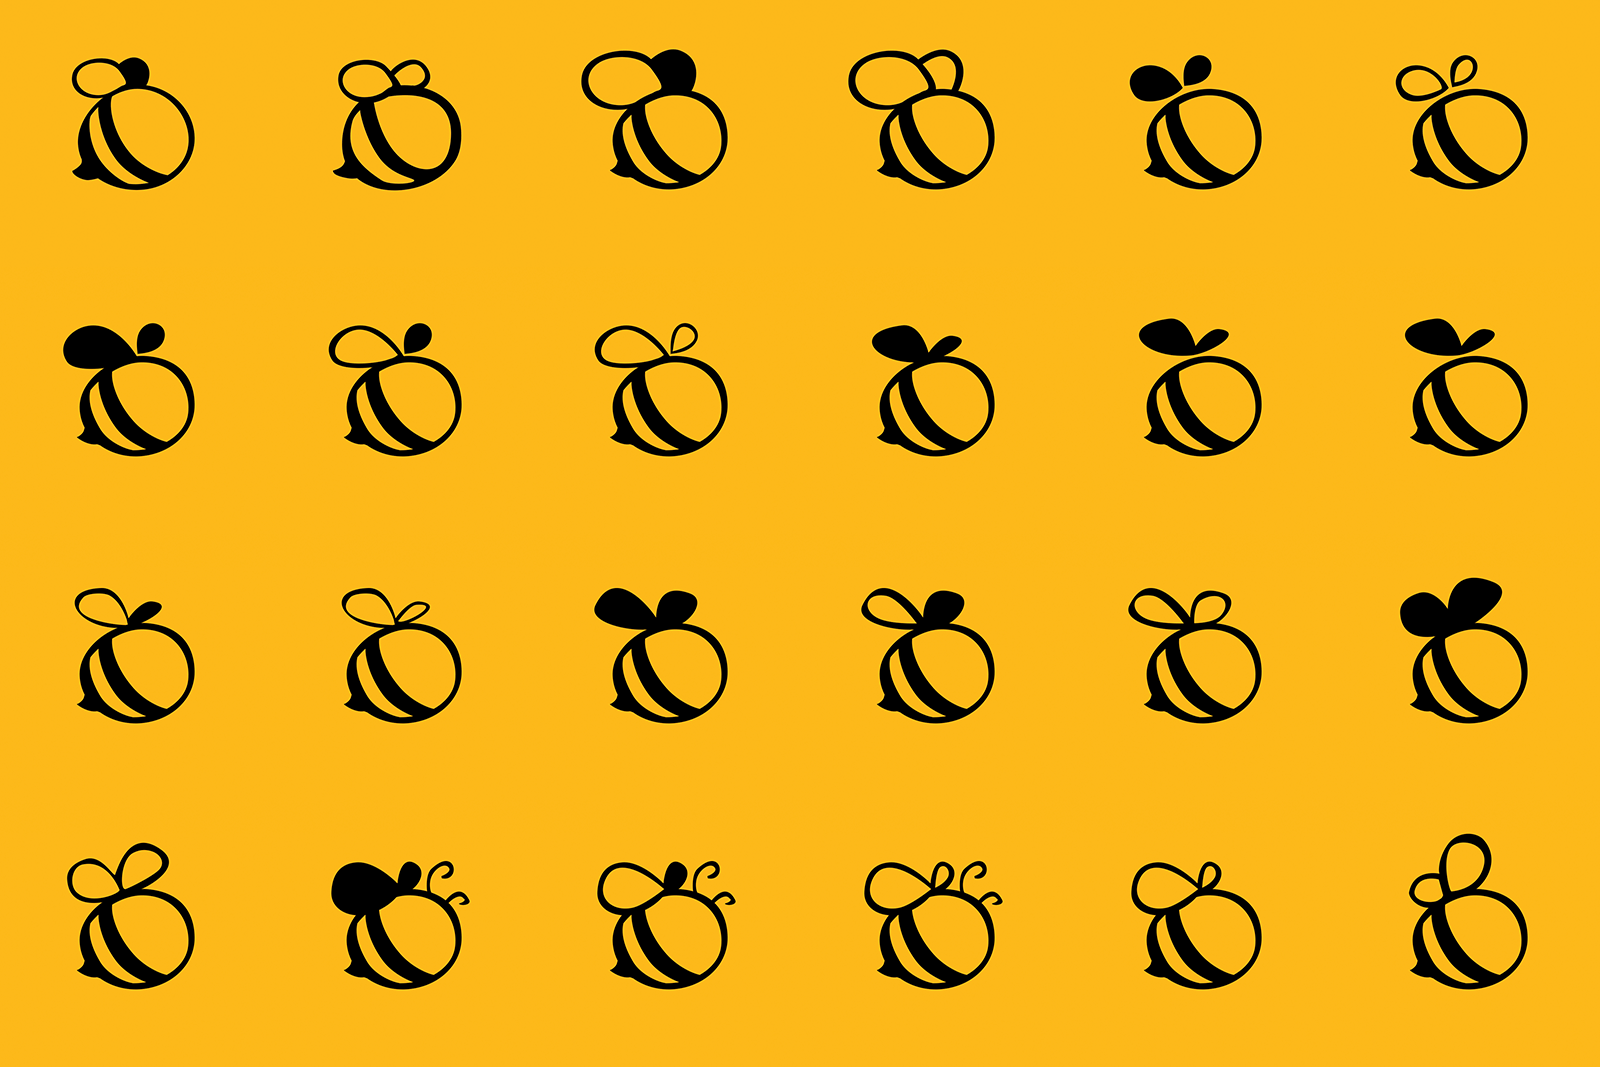 Multiple Bee shaped logomark explorations created with Photoshop